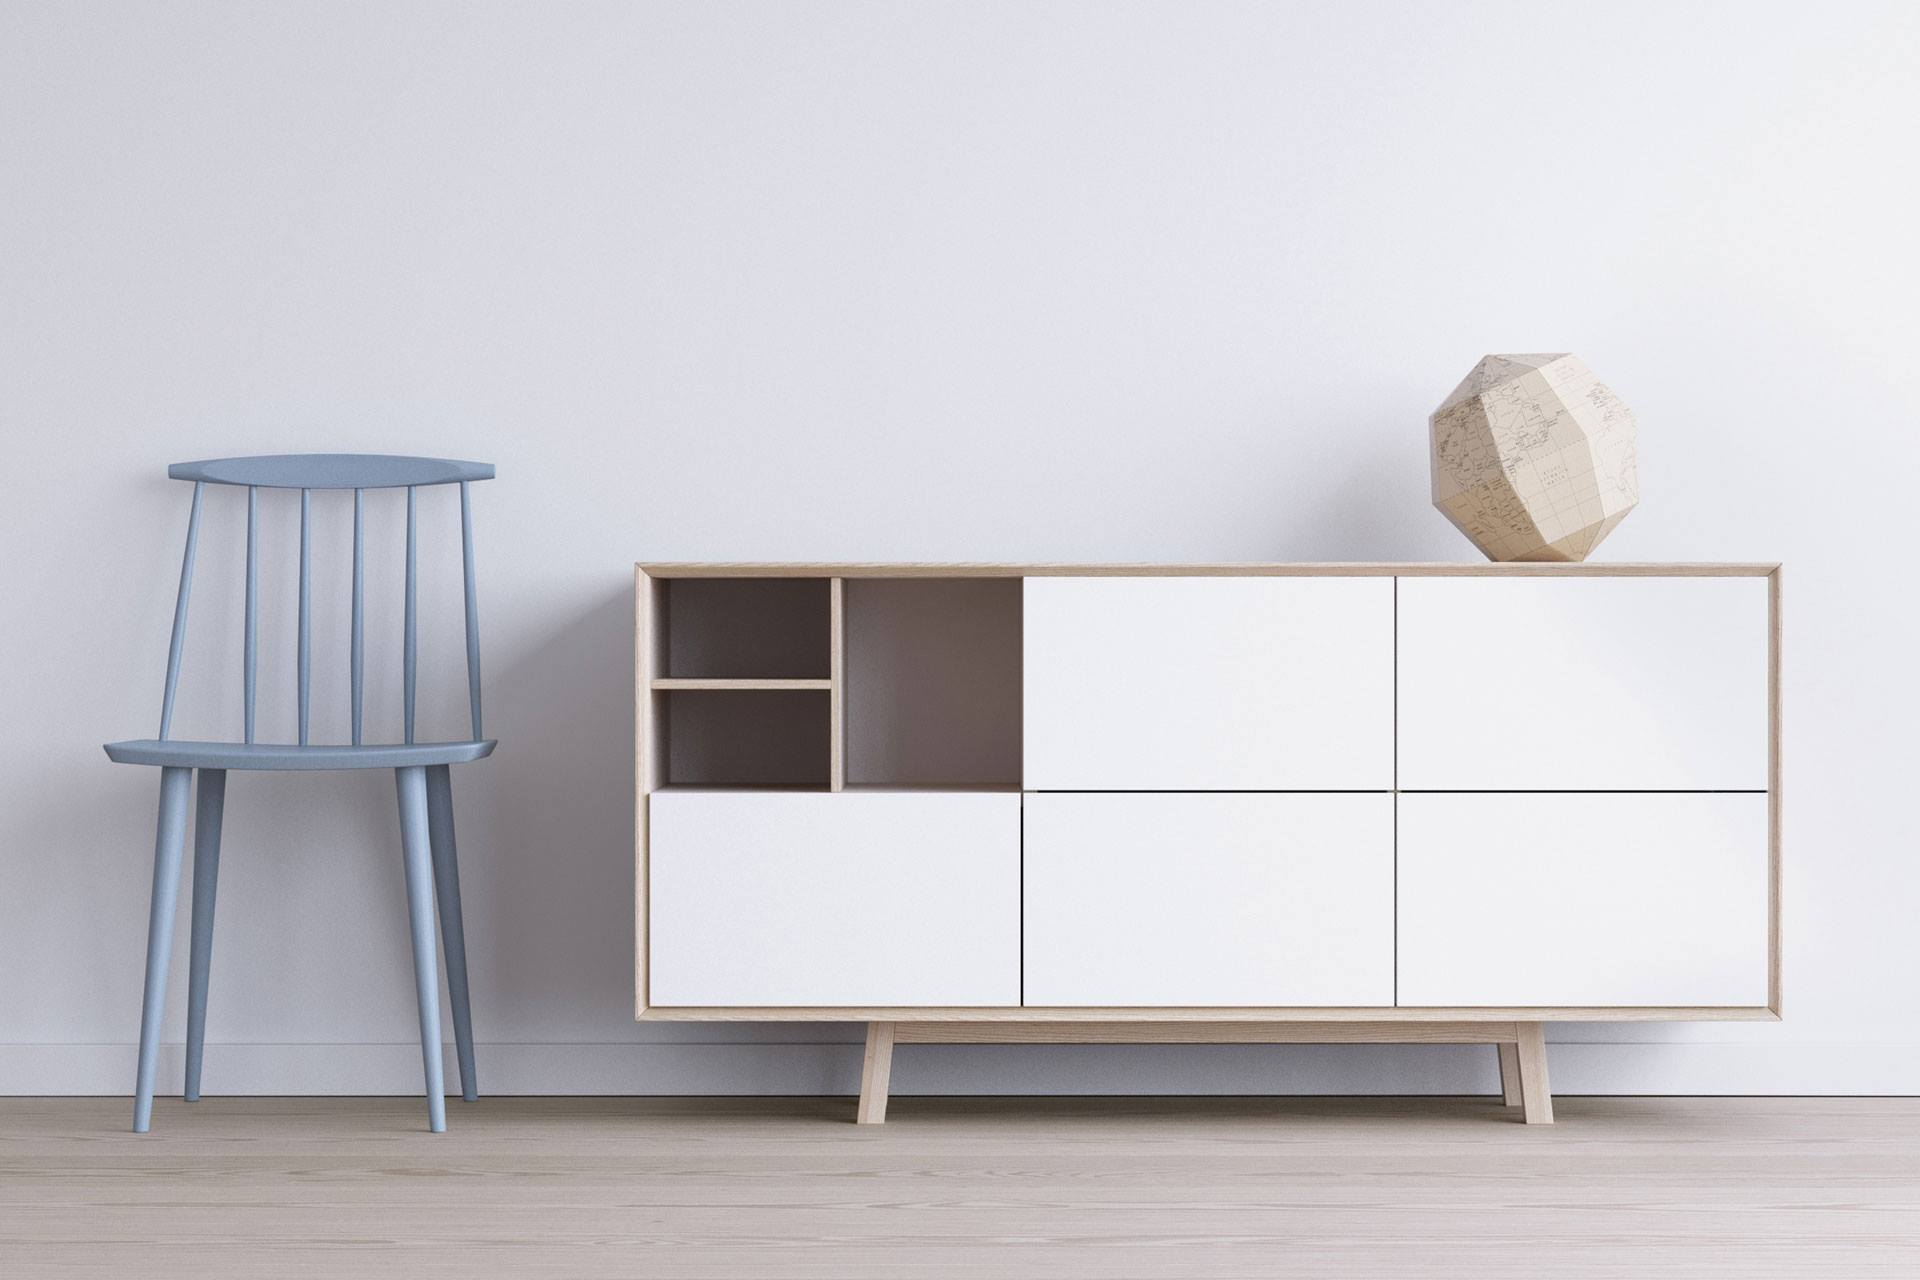 Vrayworld scandinavian furniture - Danish furniture designers ...